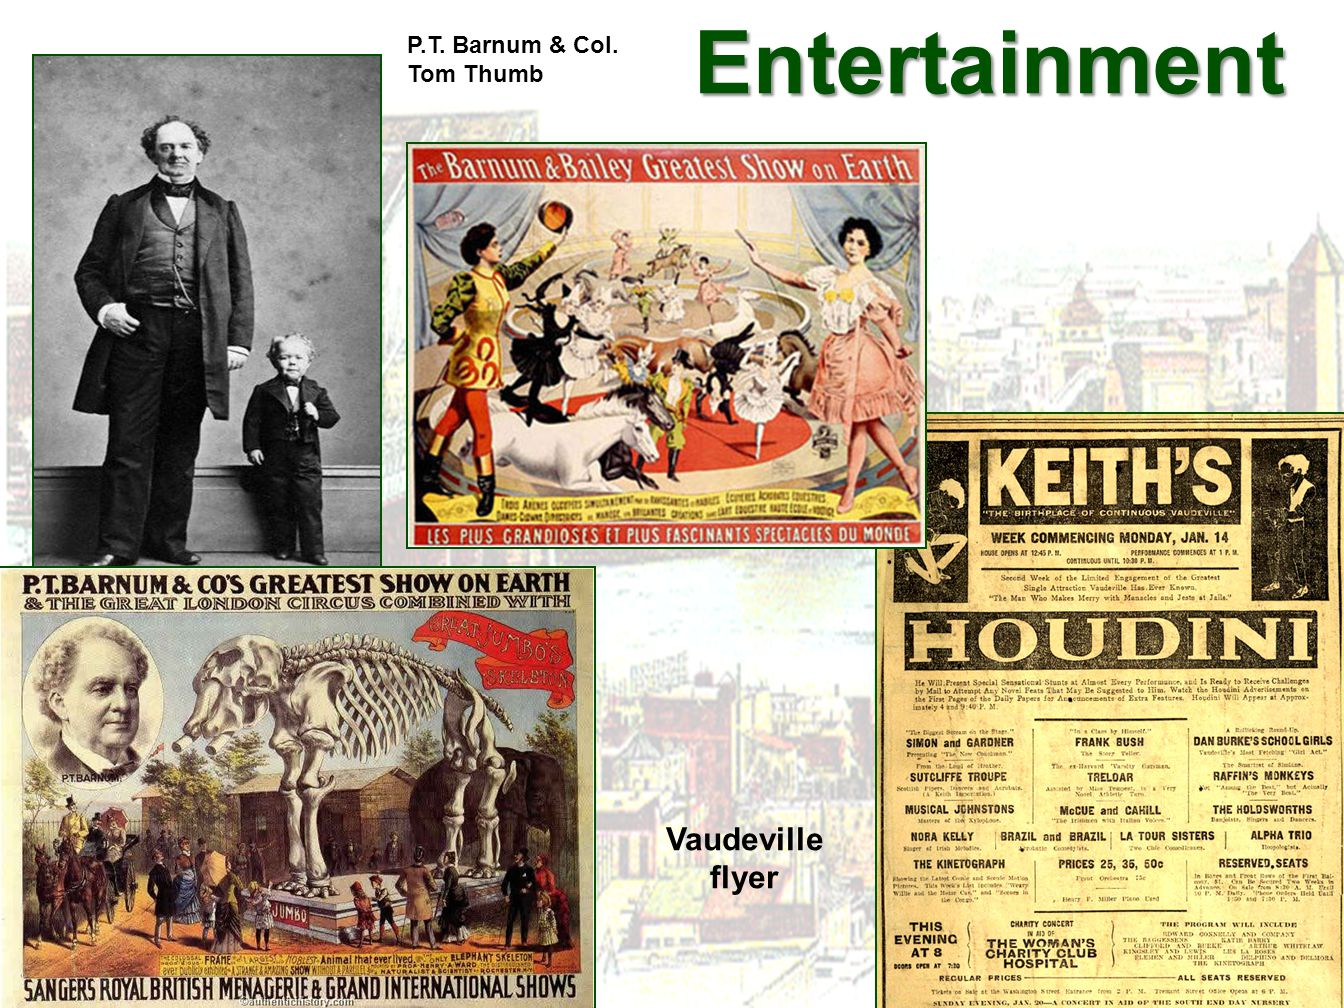 Entertainment P.T. Barnum & Col. Tom Thumb Vaudeville flyer